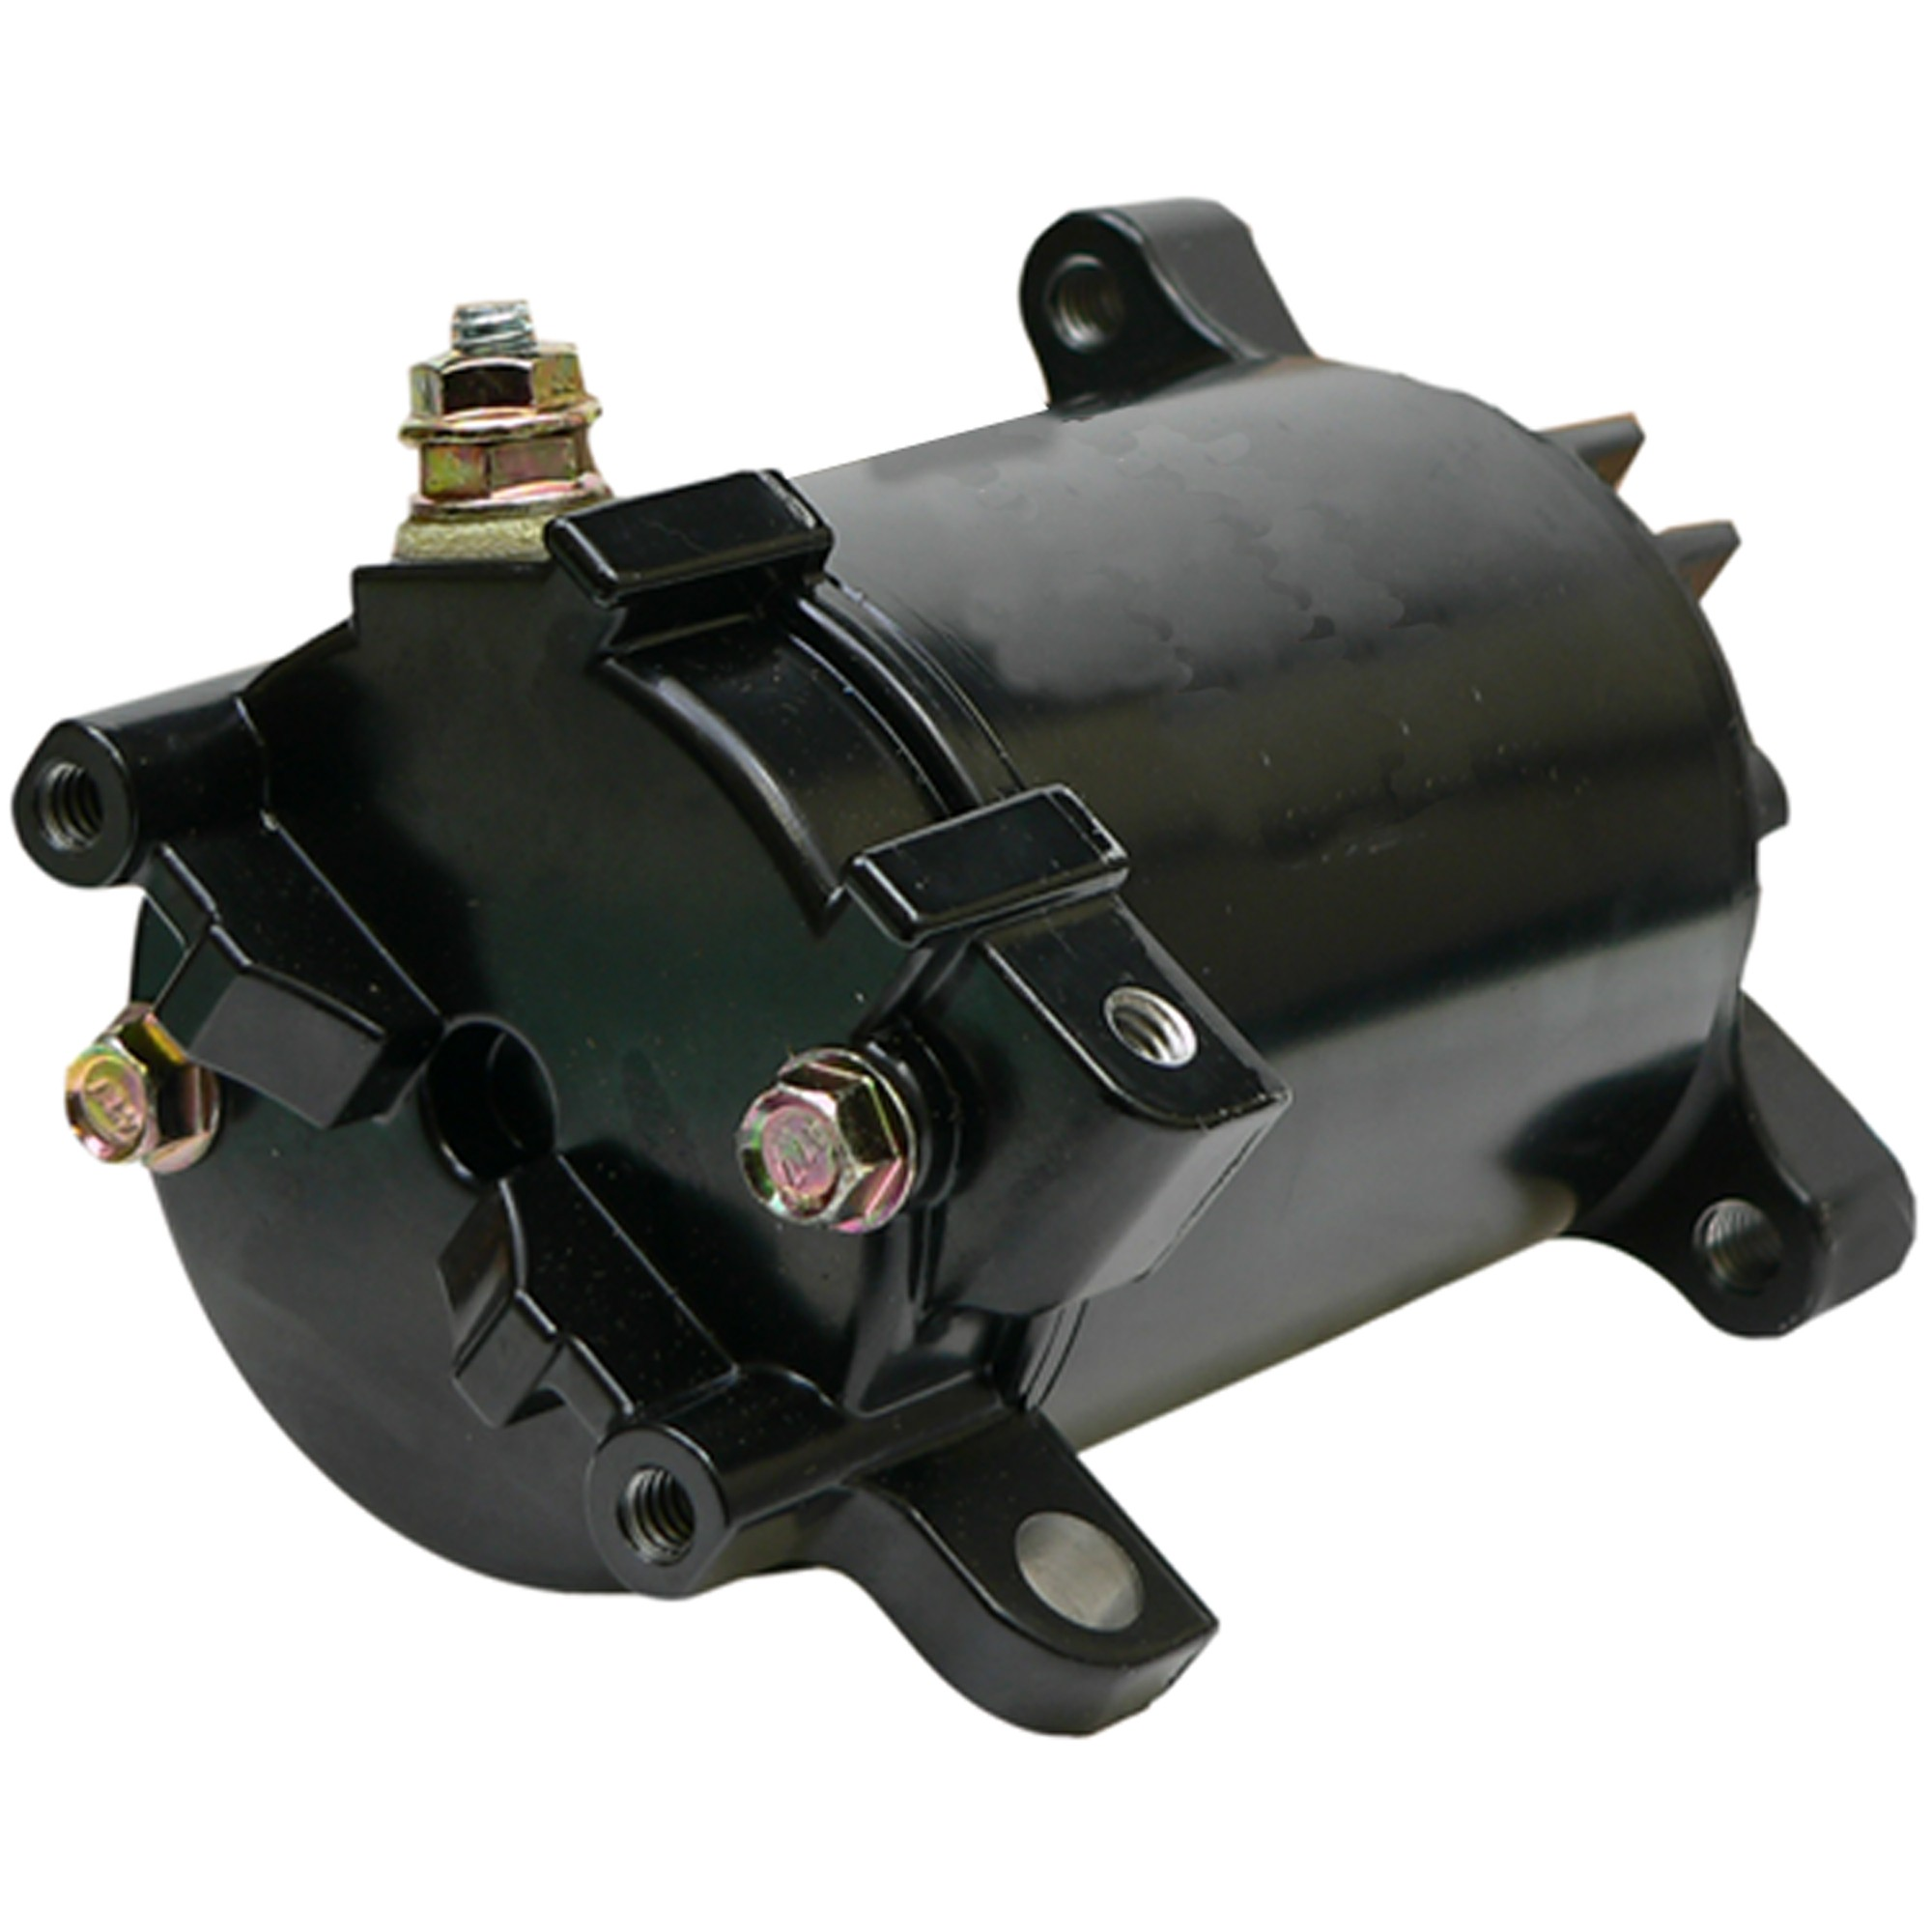 NEW STARTER JOHNSON OUTBOARD 90 90HP 115 115HP 140 140HP ENGINE 2003-06 476081